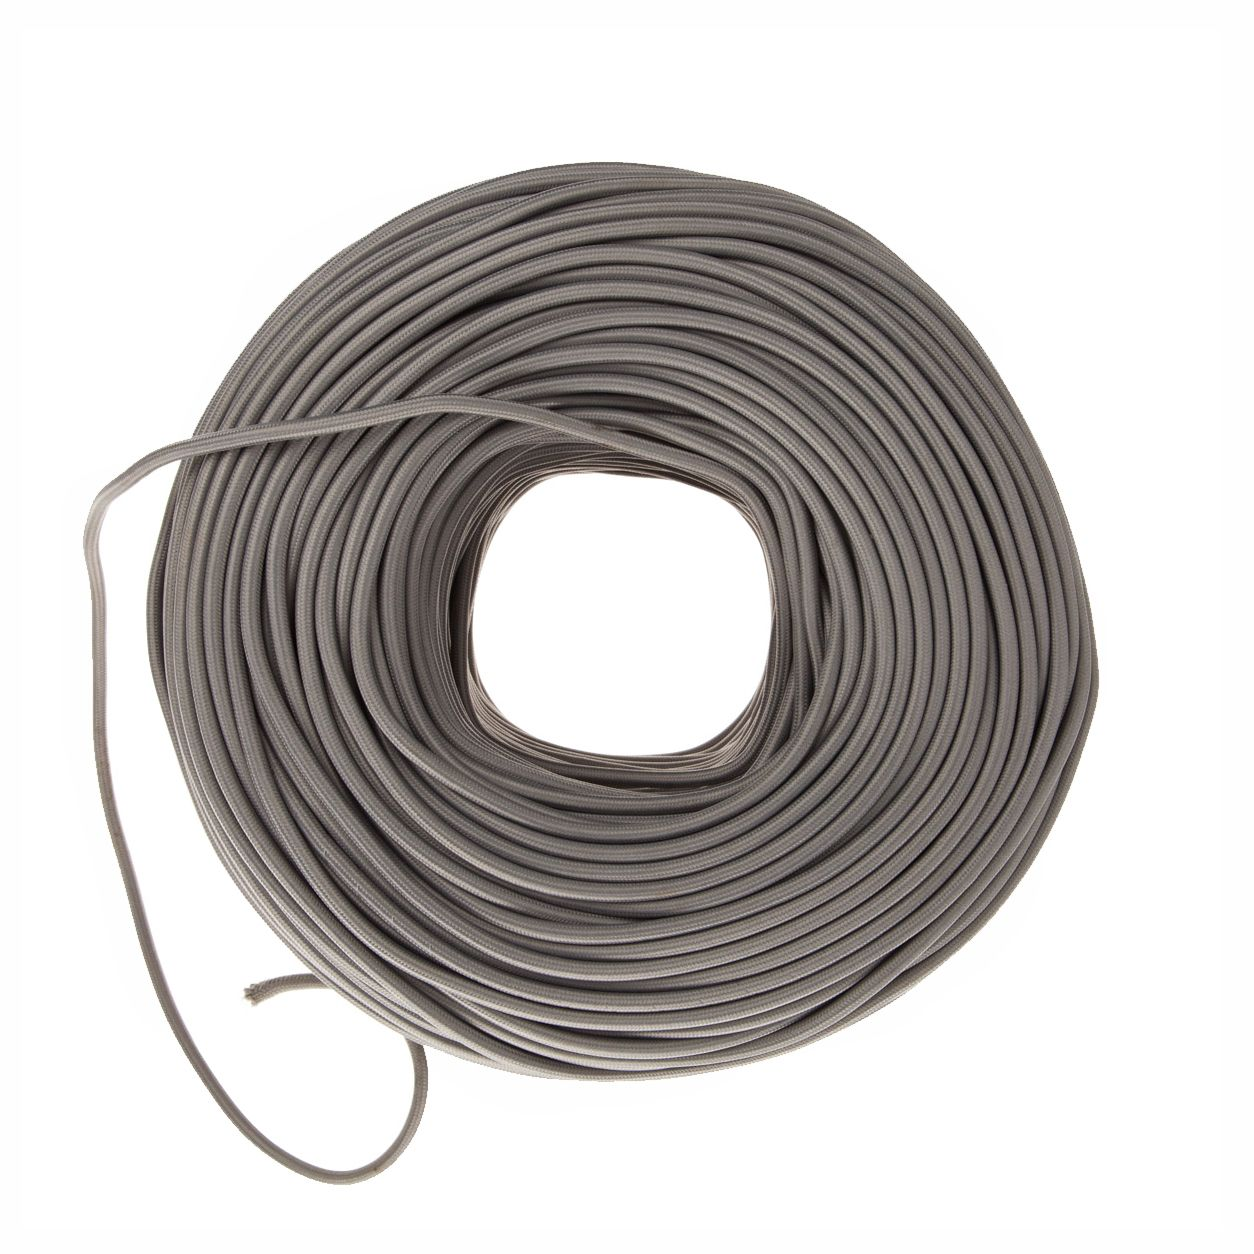 So Cord Listed 3 4 5 Conductor So Sow Cable Flexible Cored: Cloth Covered Wire - Gray